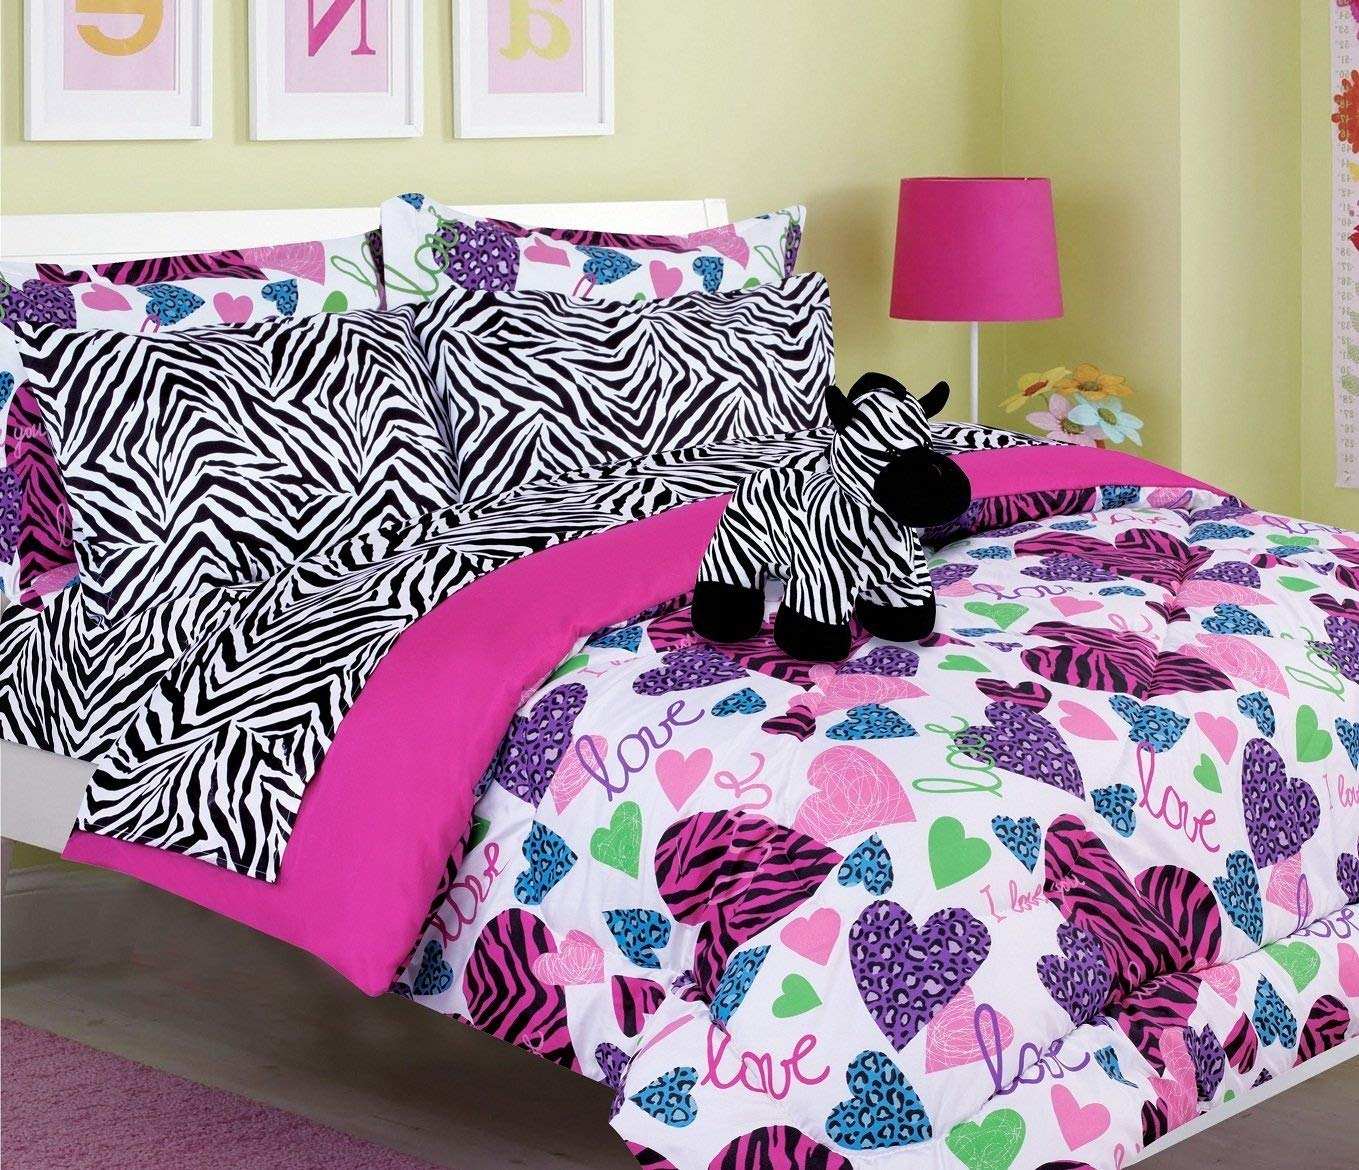 Girls Kids Bedding-MISTY ZEBRA Tween Teen Dream Bed In A Bag. TWIN SIZE Comforter set, Sheet Set and Plush Toy Included-Love, Hearts-Hot Pink, Turquoise Blue, Purple, Black and White